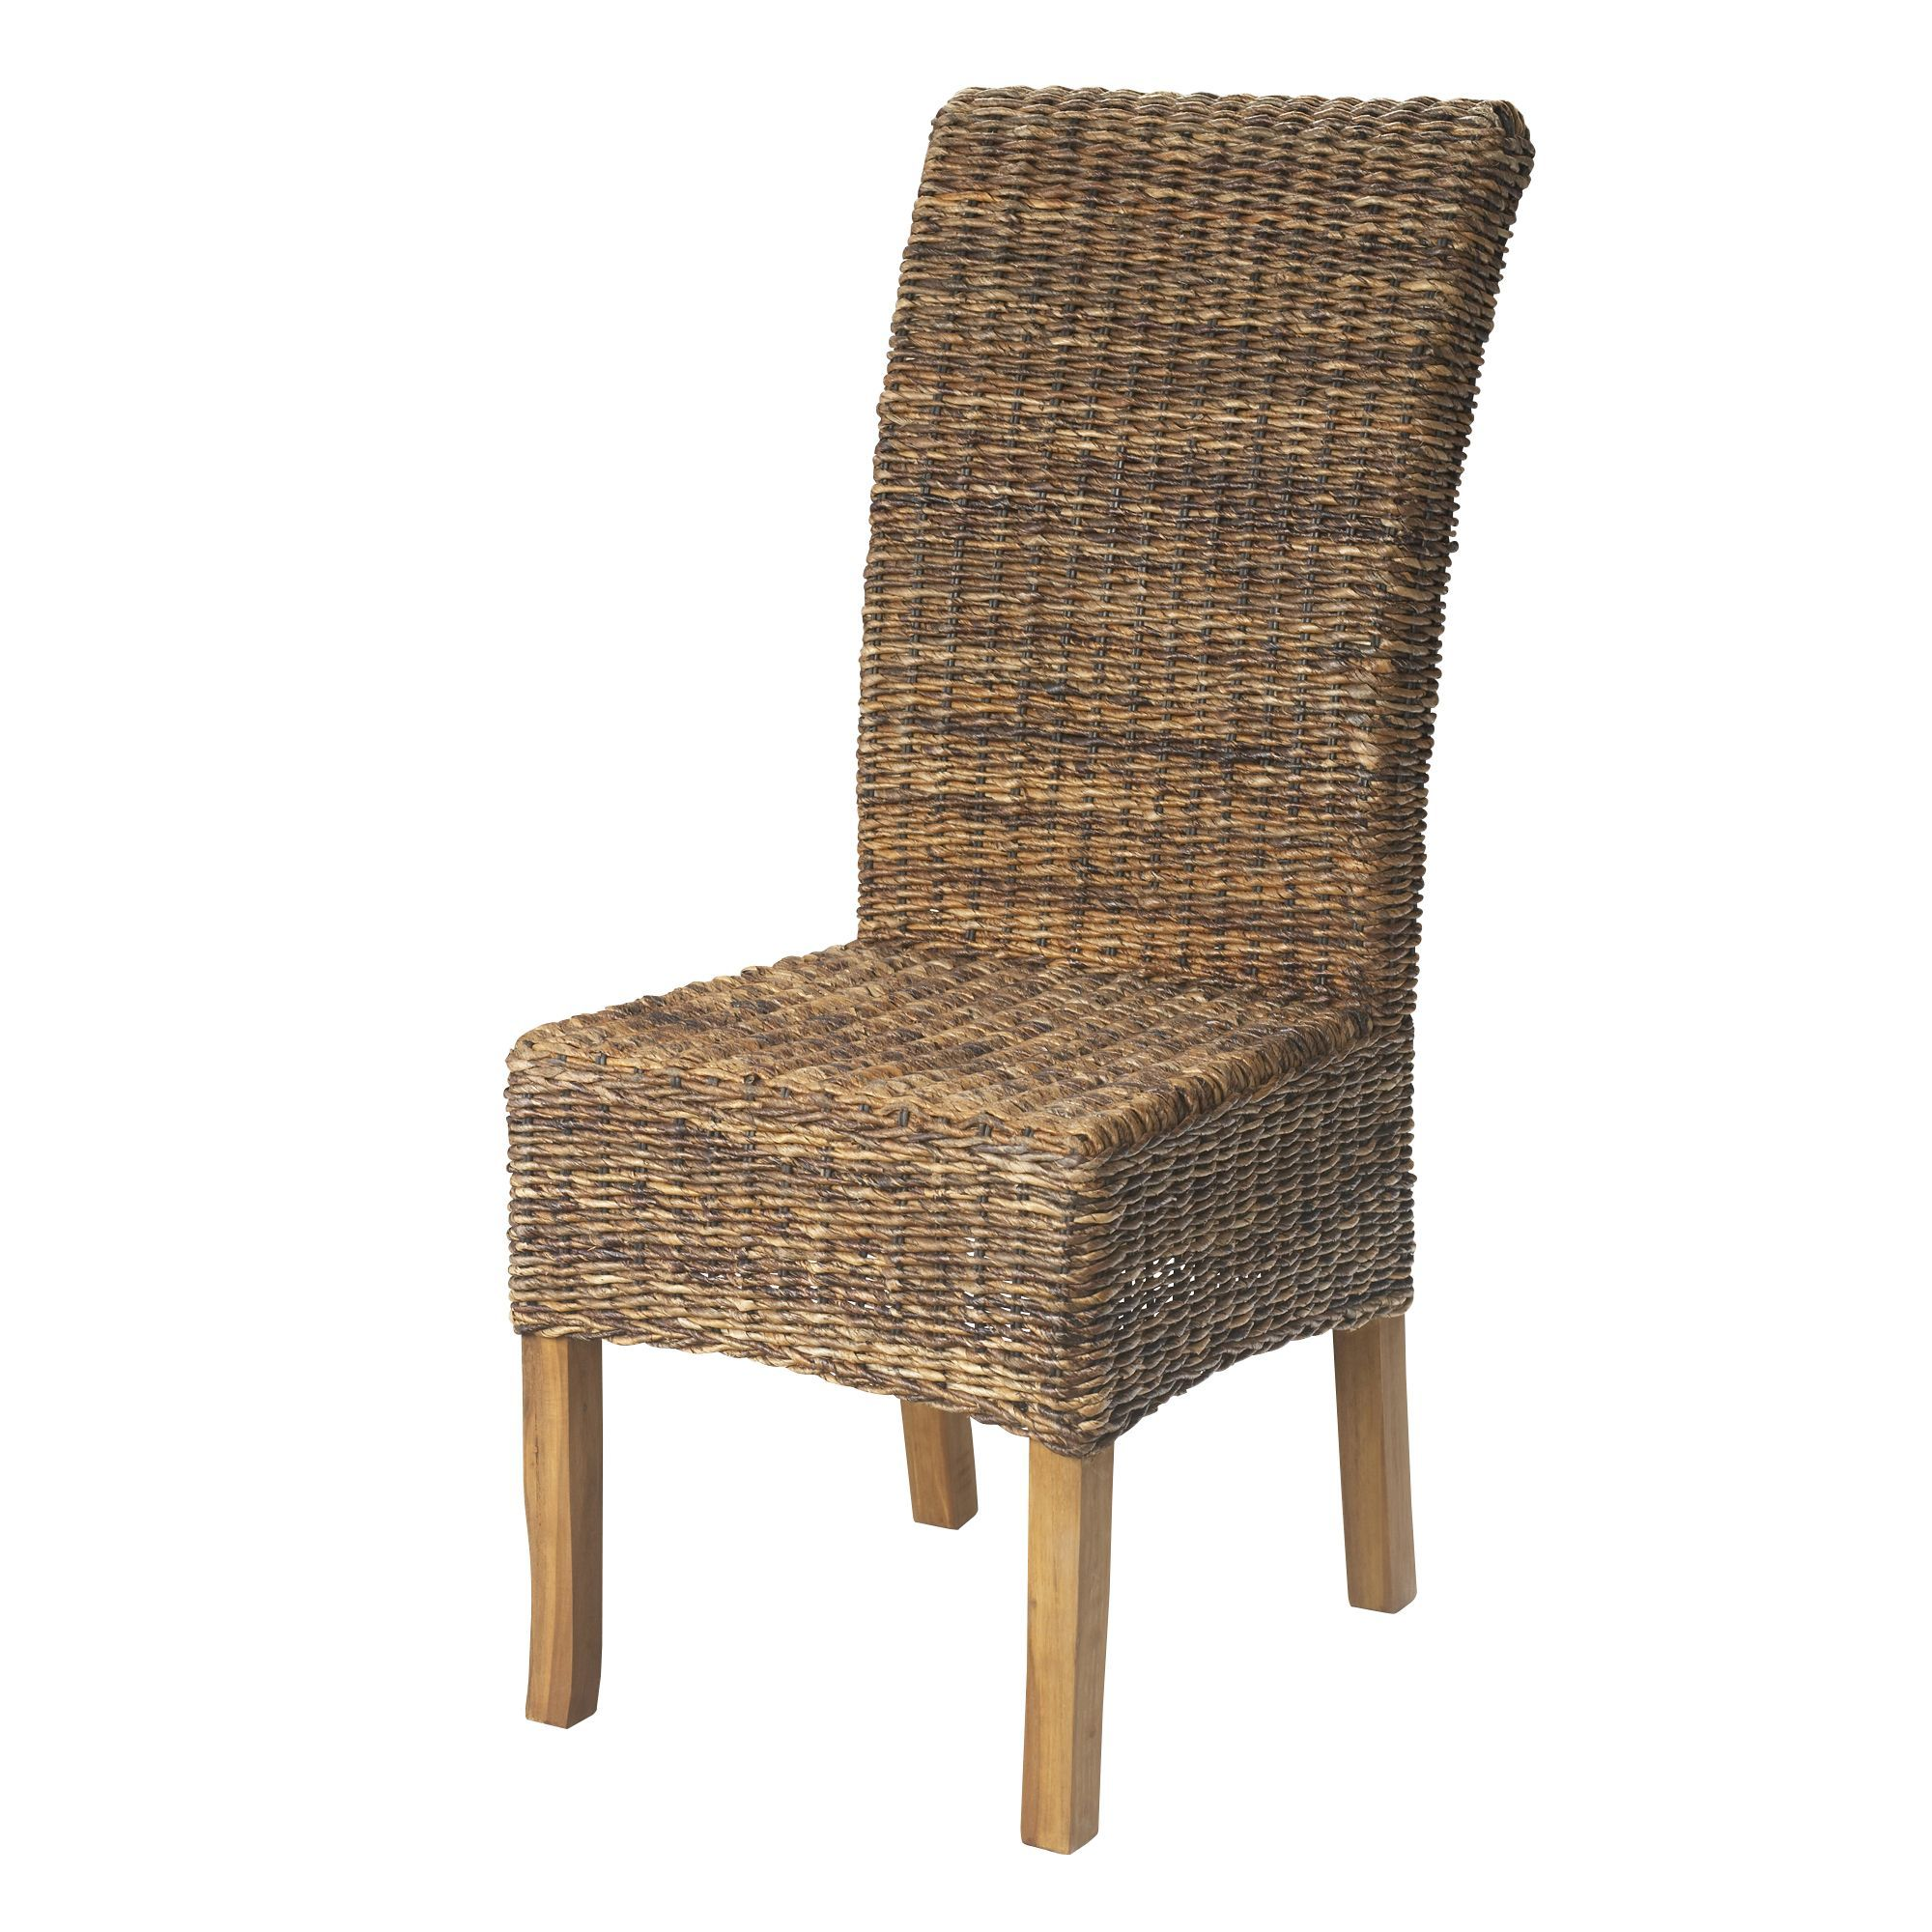 Chaise en abaca naturel naturel samourai chaises - Table a manger alinea ...